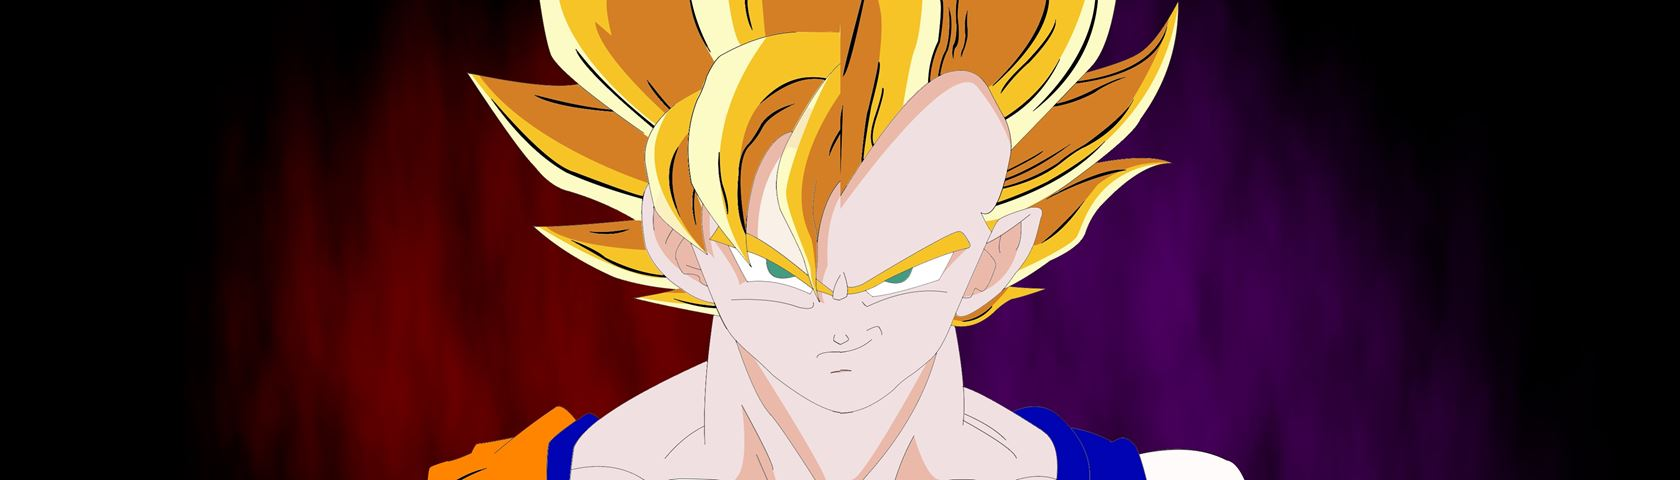 Vegeta And Goku O Images WallpaperFusion By Binary Fortress Software